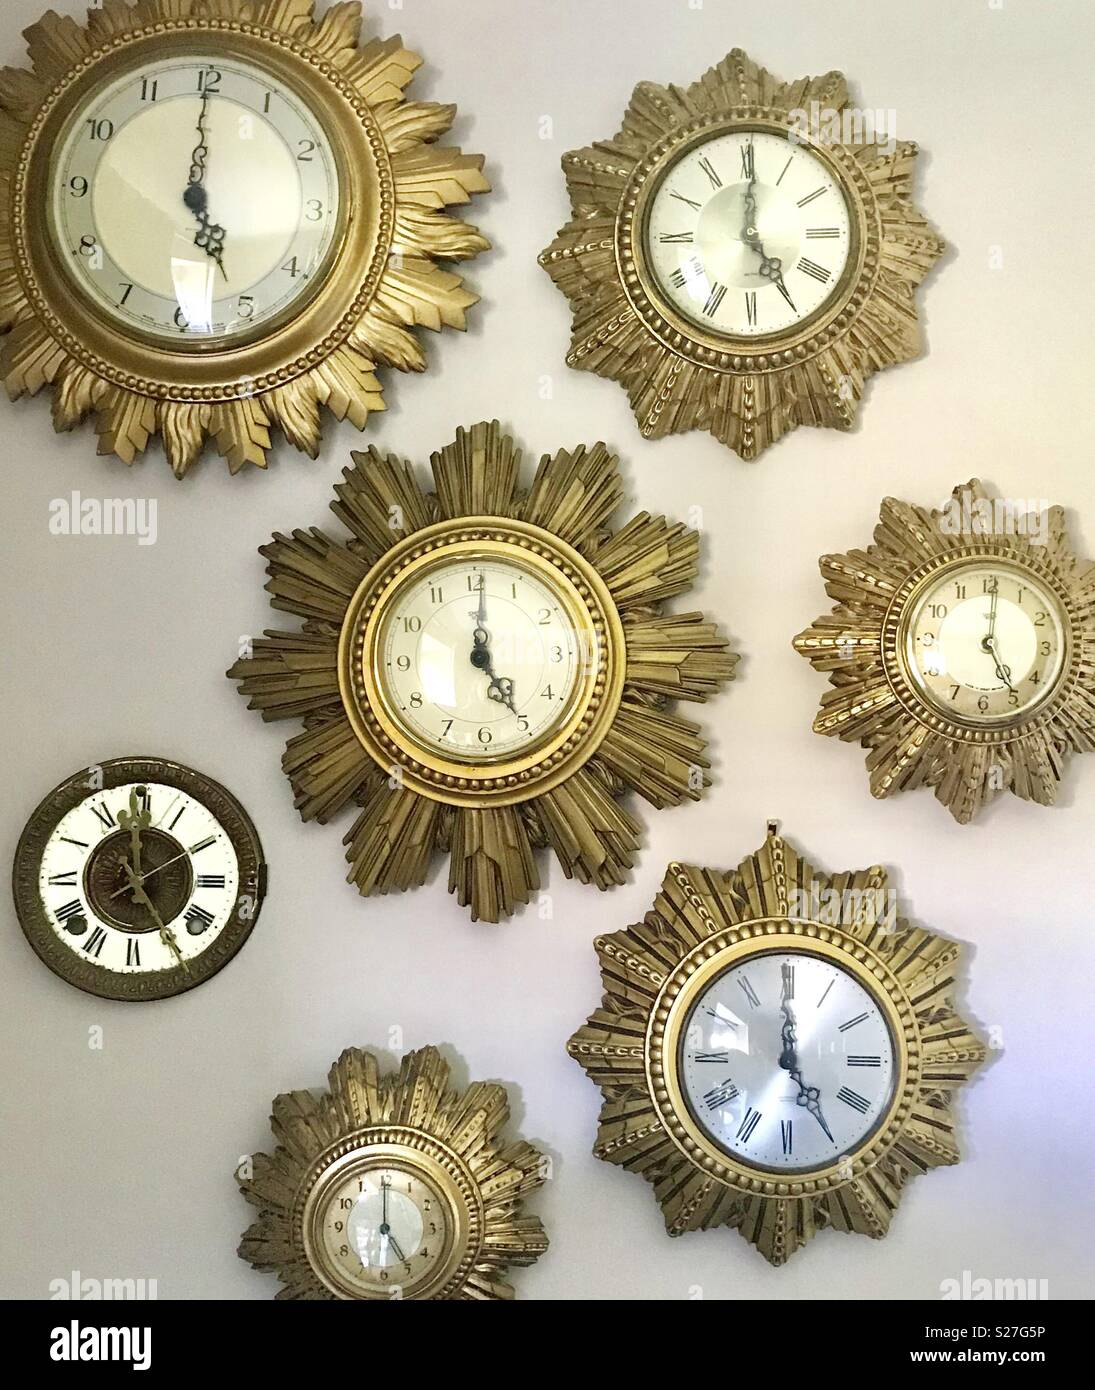 Collection of gold wall clocks in sunburst style - Stock Image